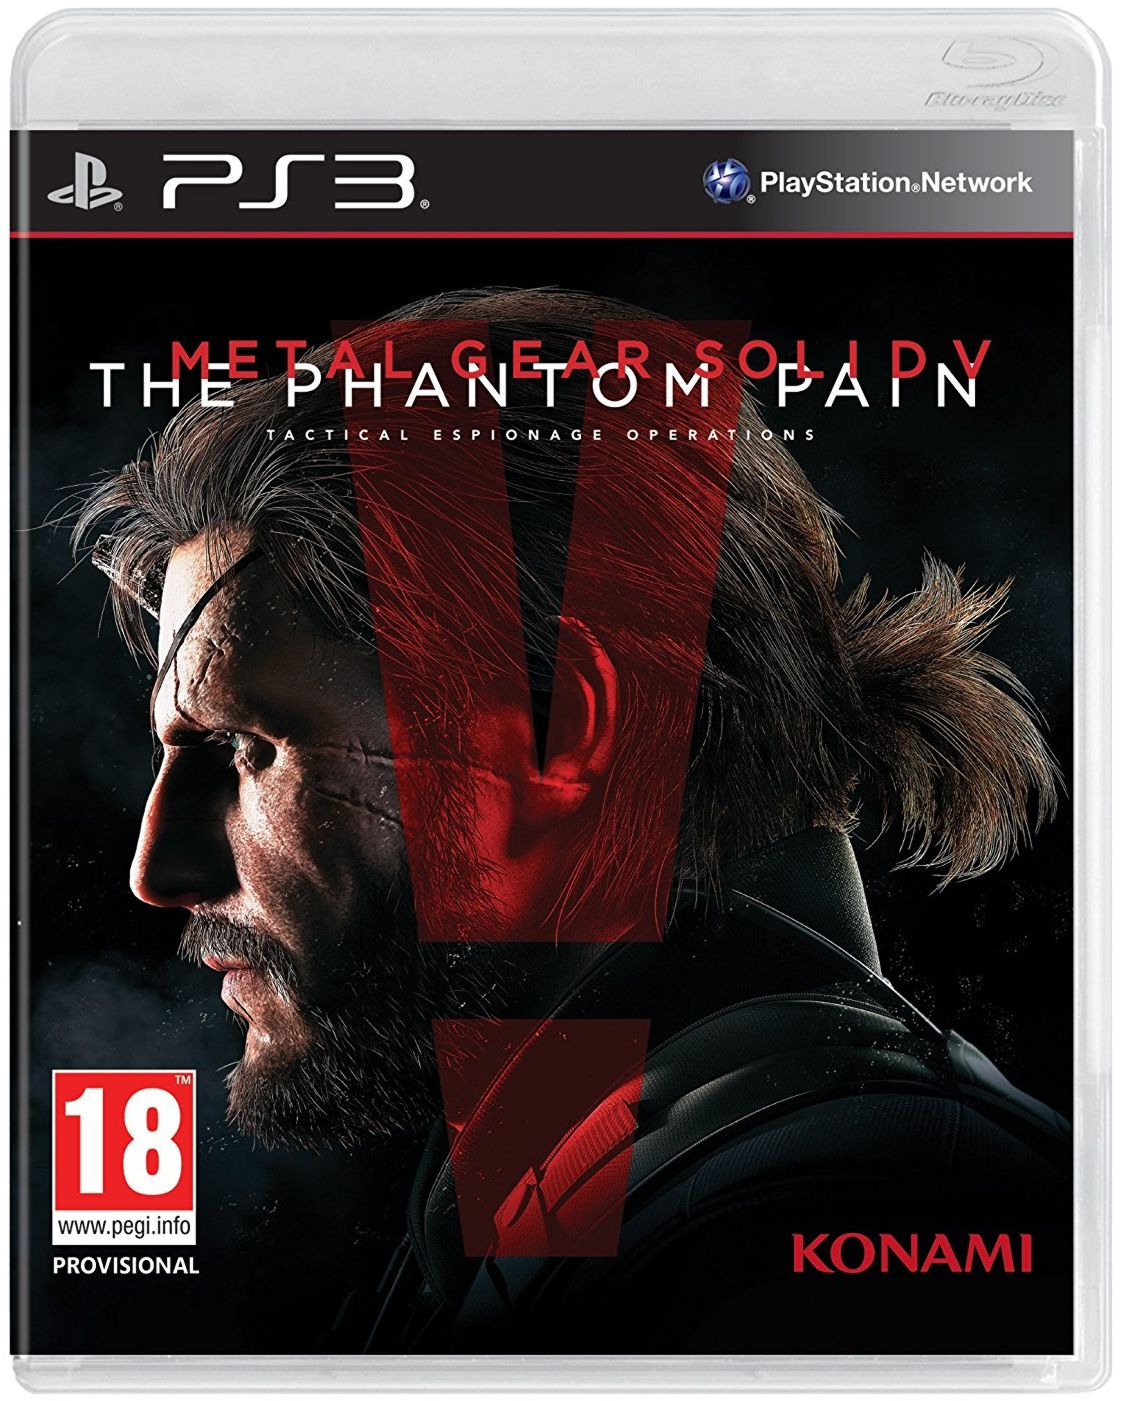 METAL GEAR SOLID V: THE PHANTOM PAIN (D1 Edition) - PS3